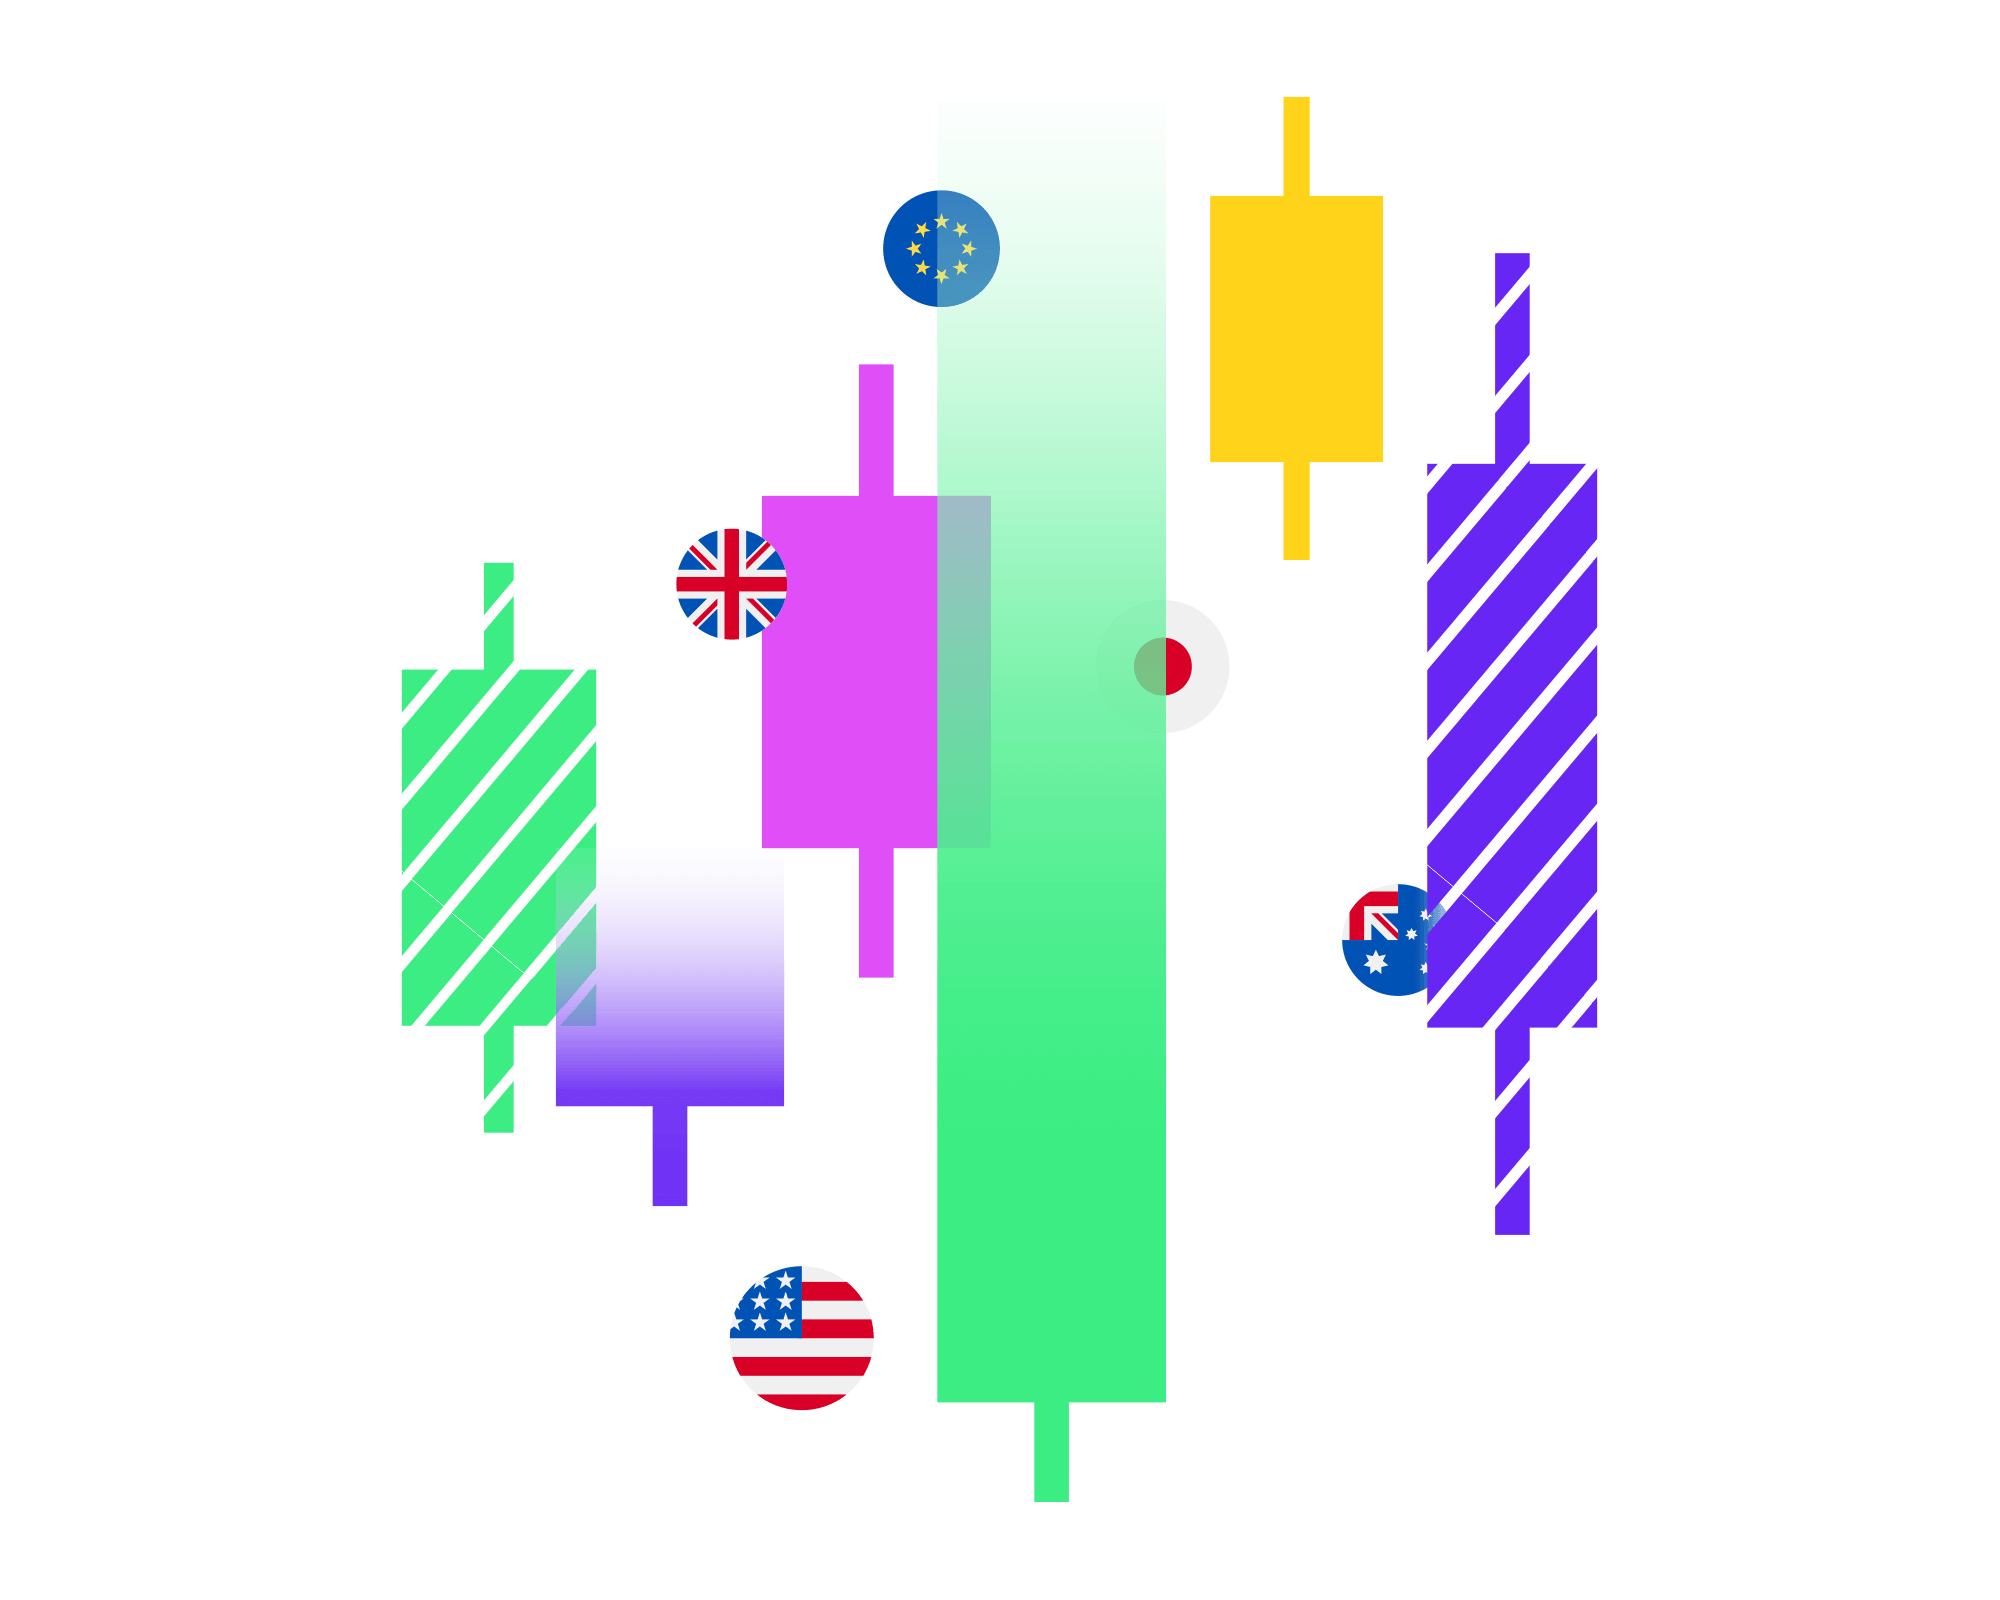 forex shapes and currencies illustration